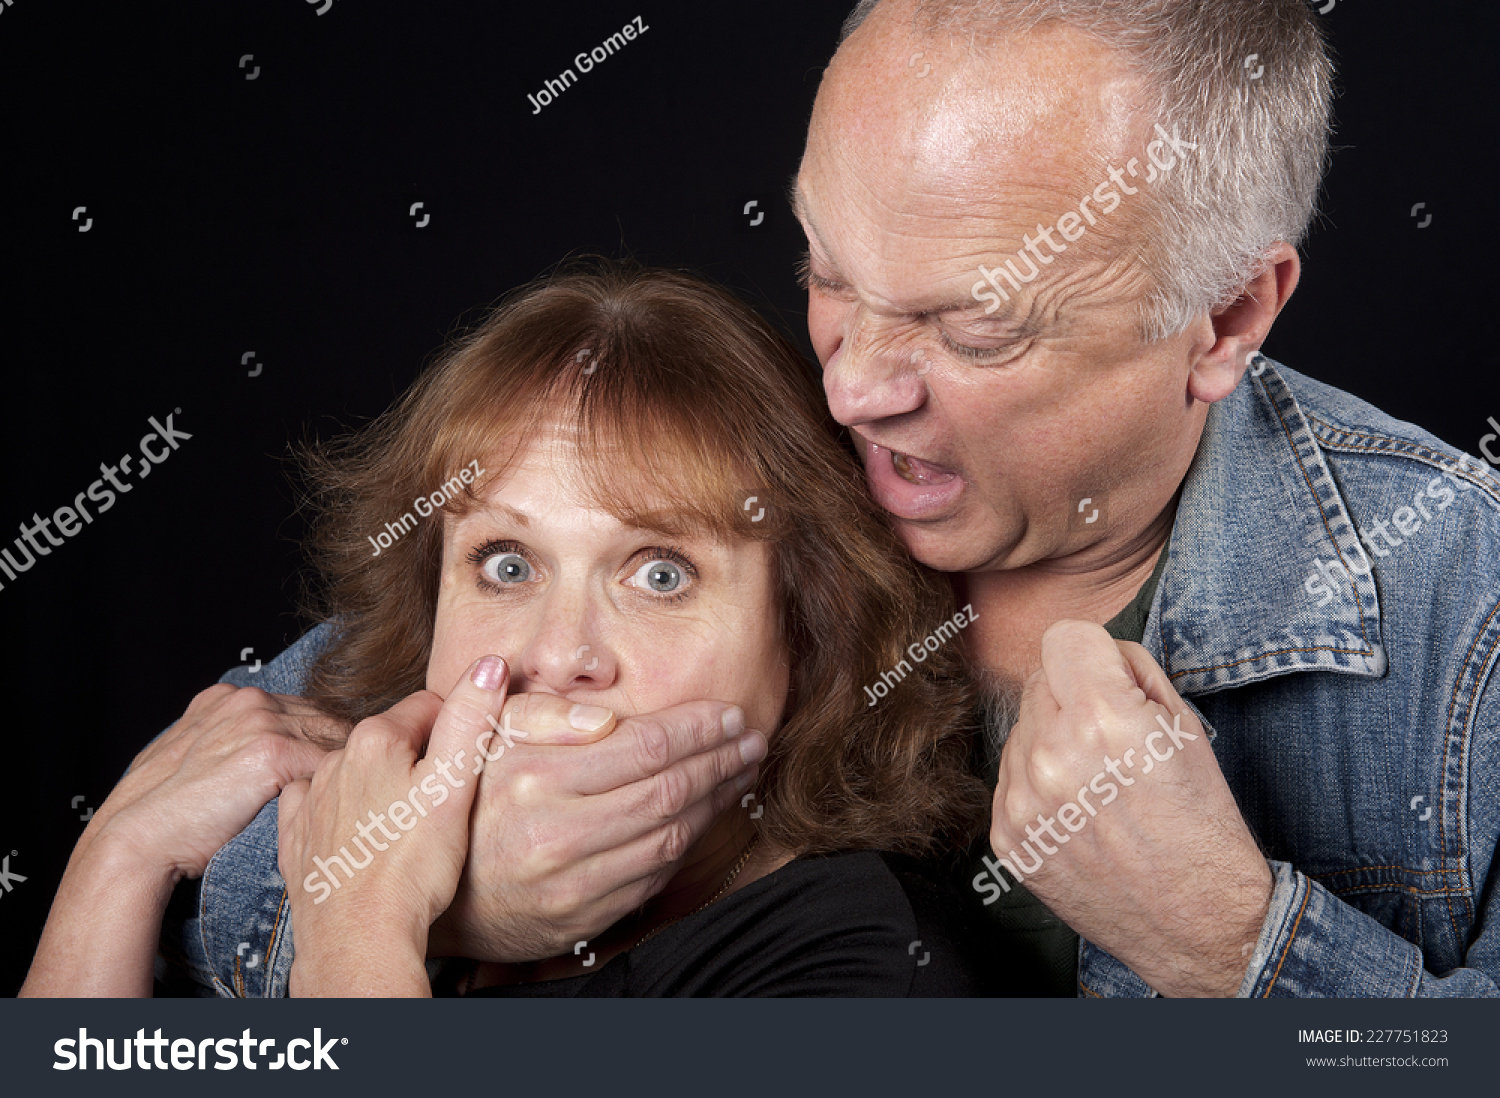 Woman Being Kidnapped And Abused Royalty Free Stock Photos